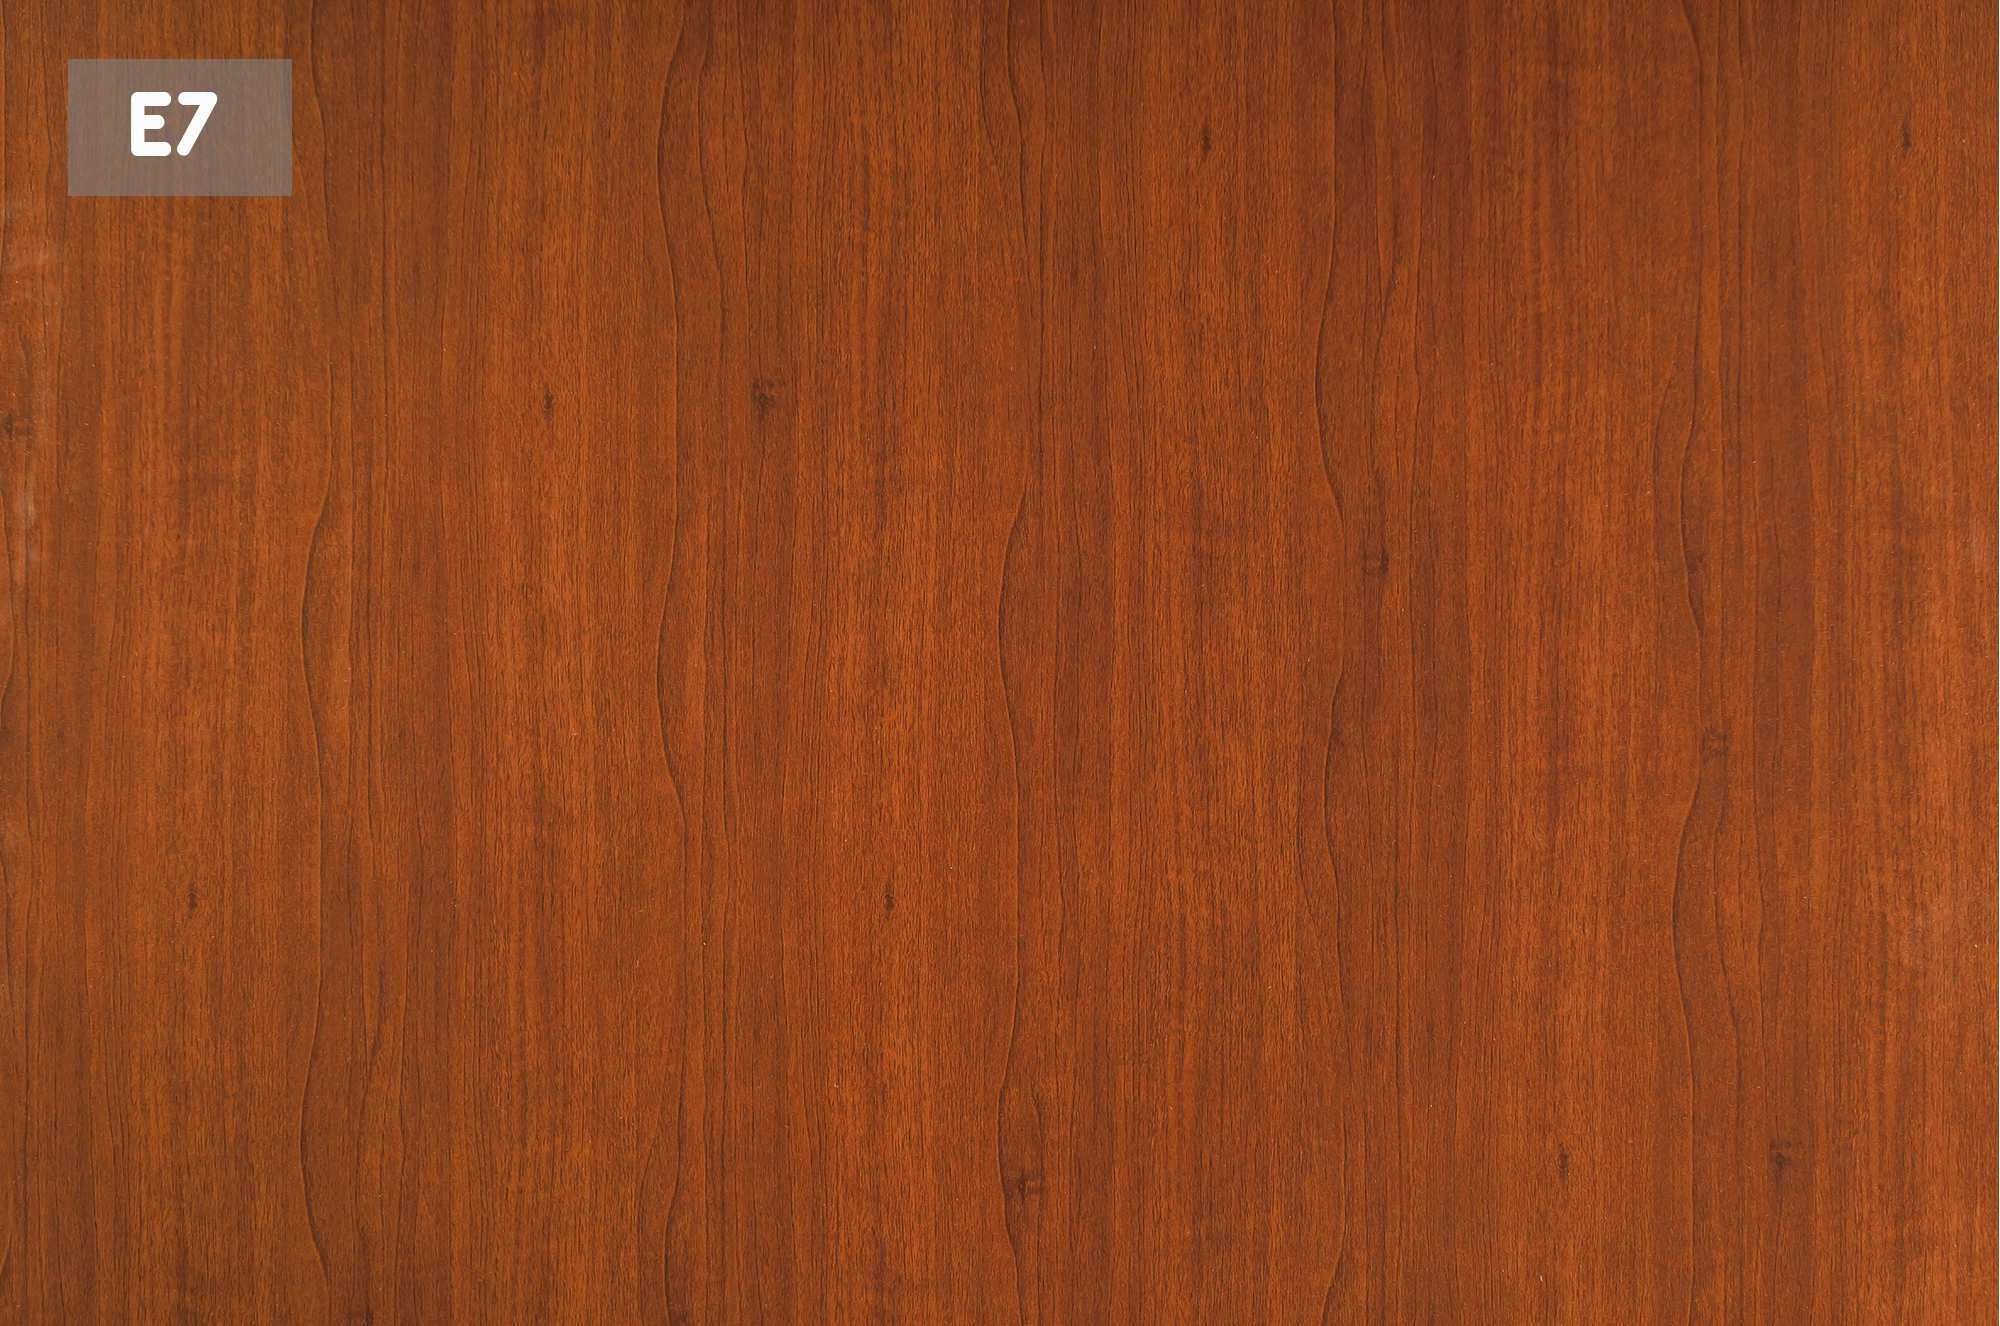 woodprint-E7